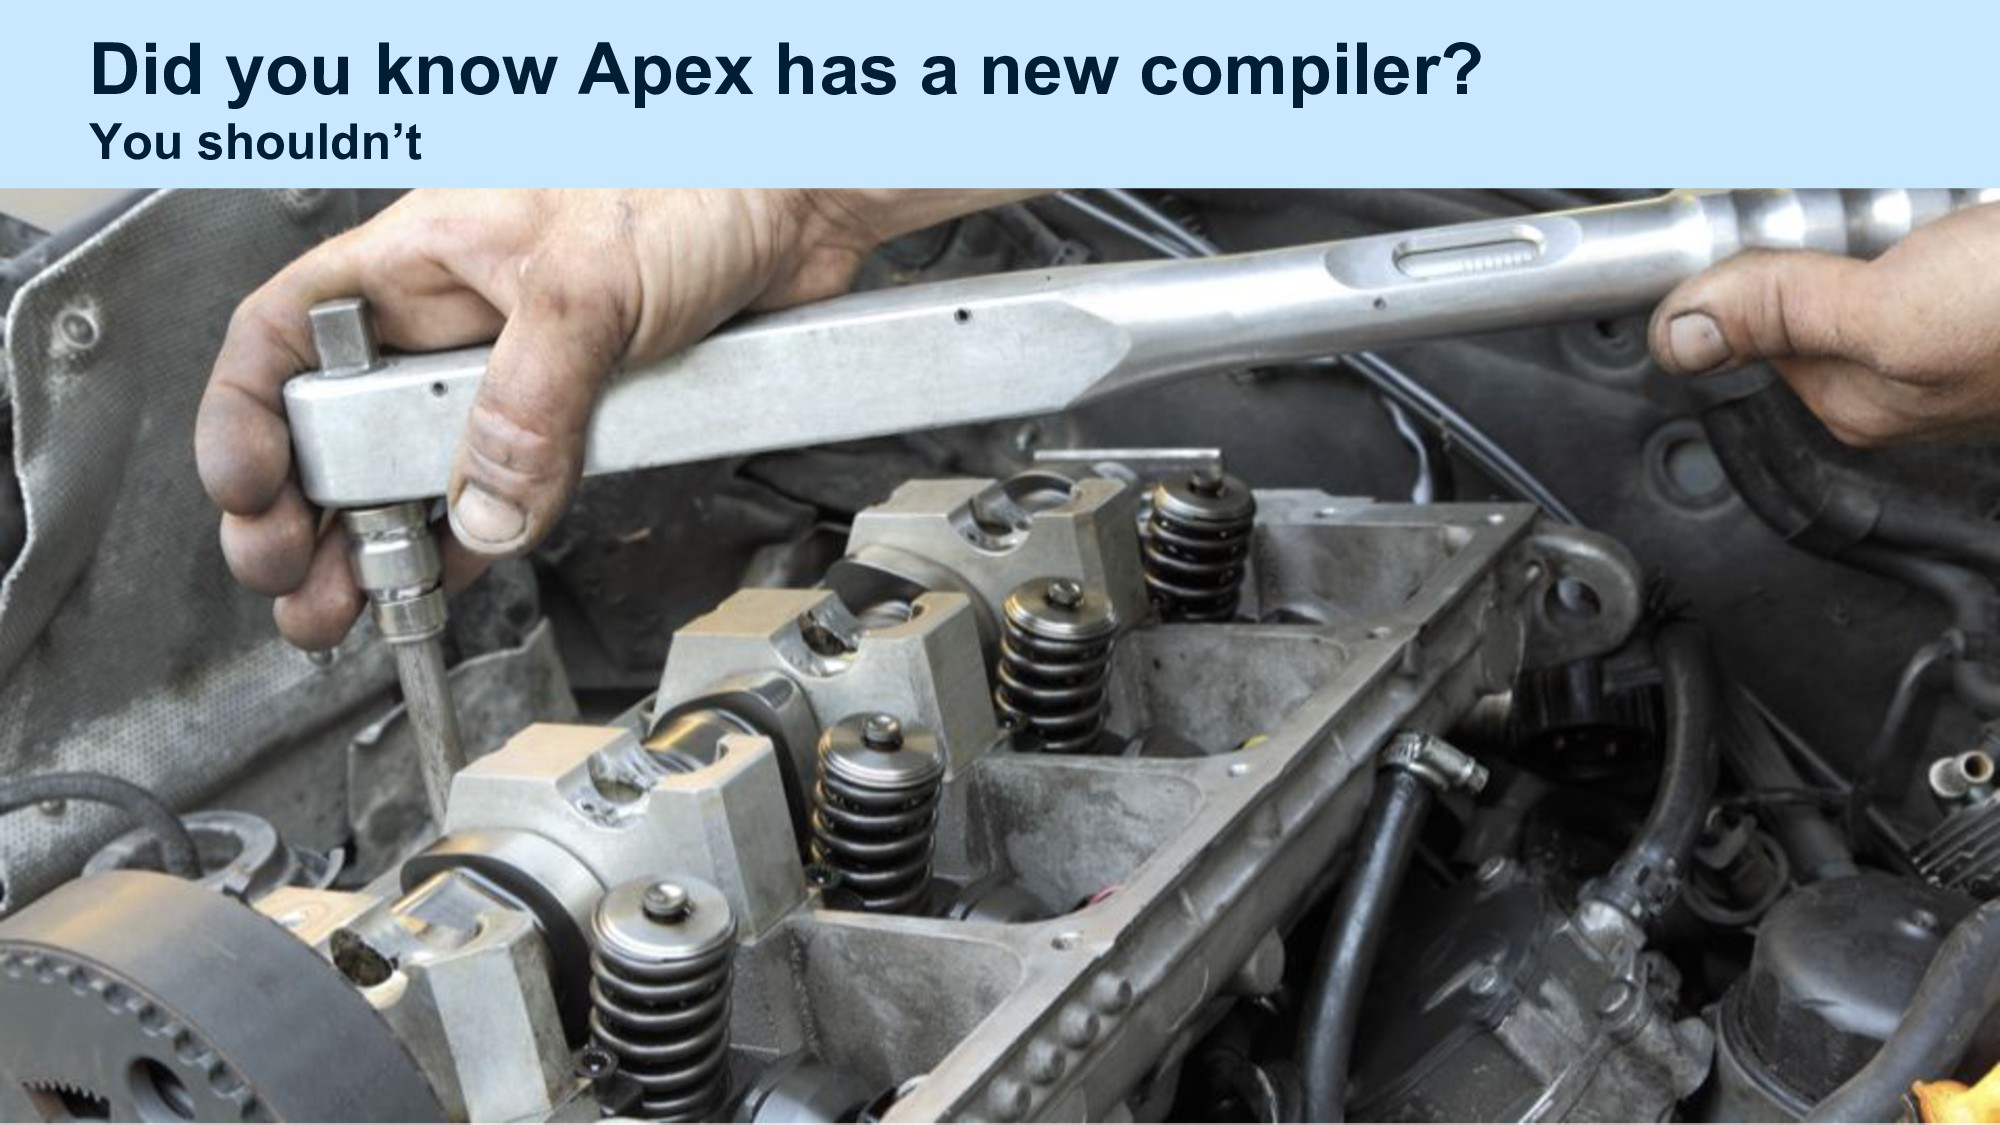 Did you know Apex has a new compiler? You shoul...